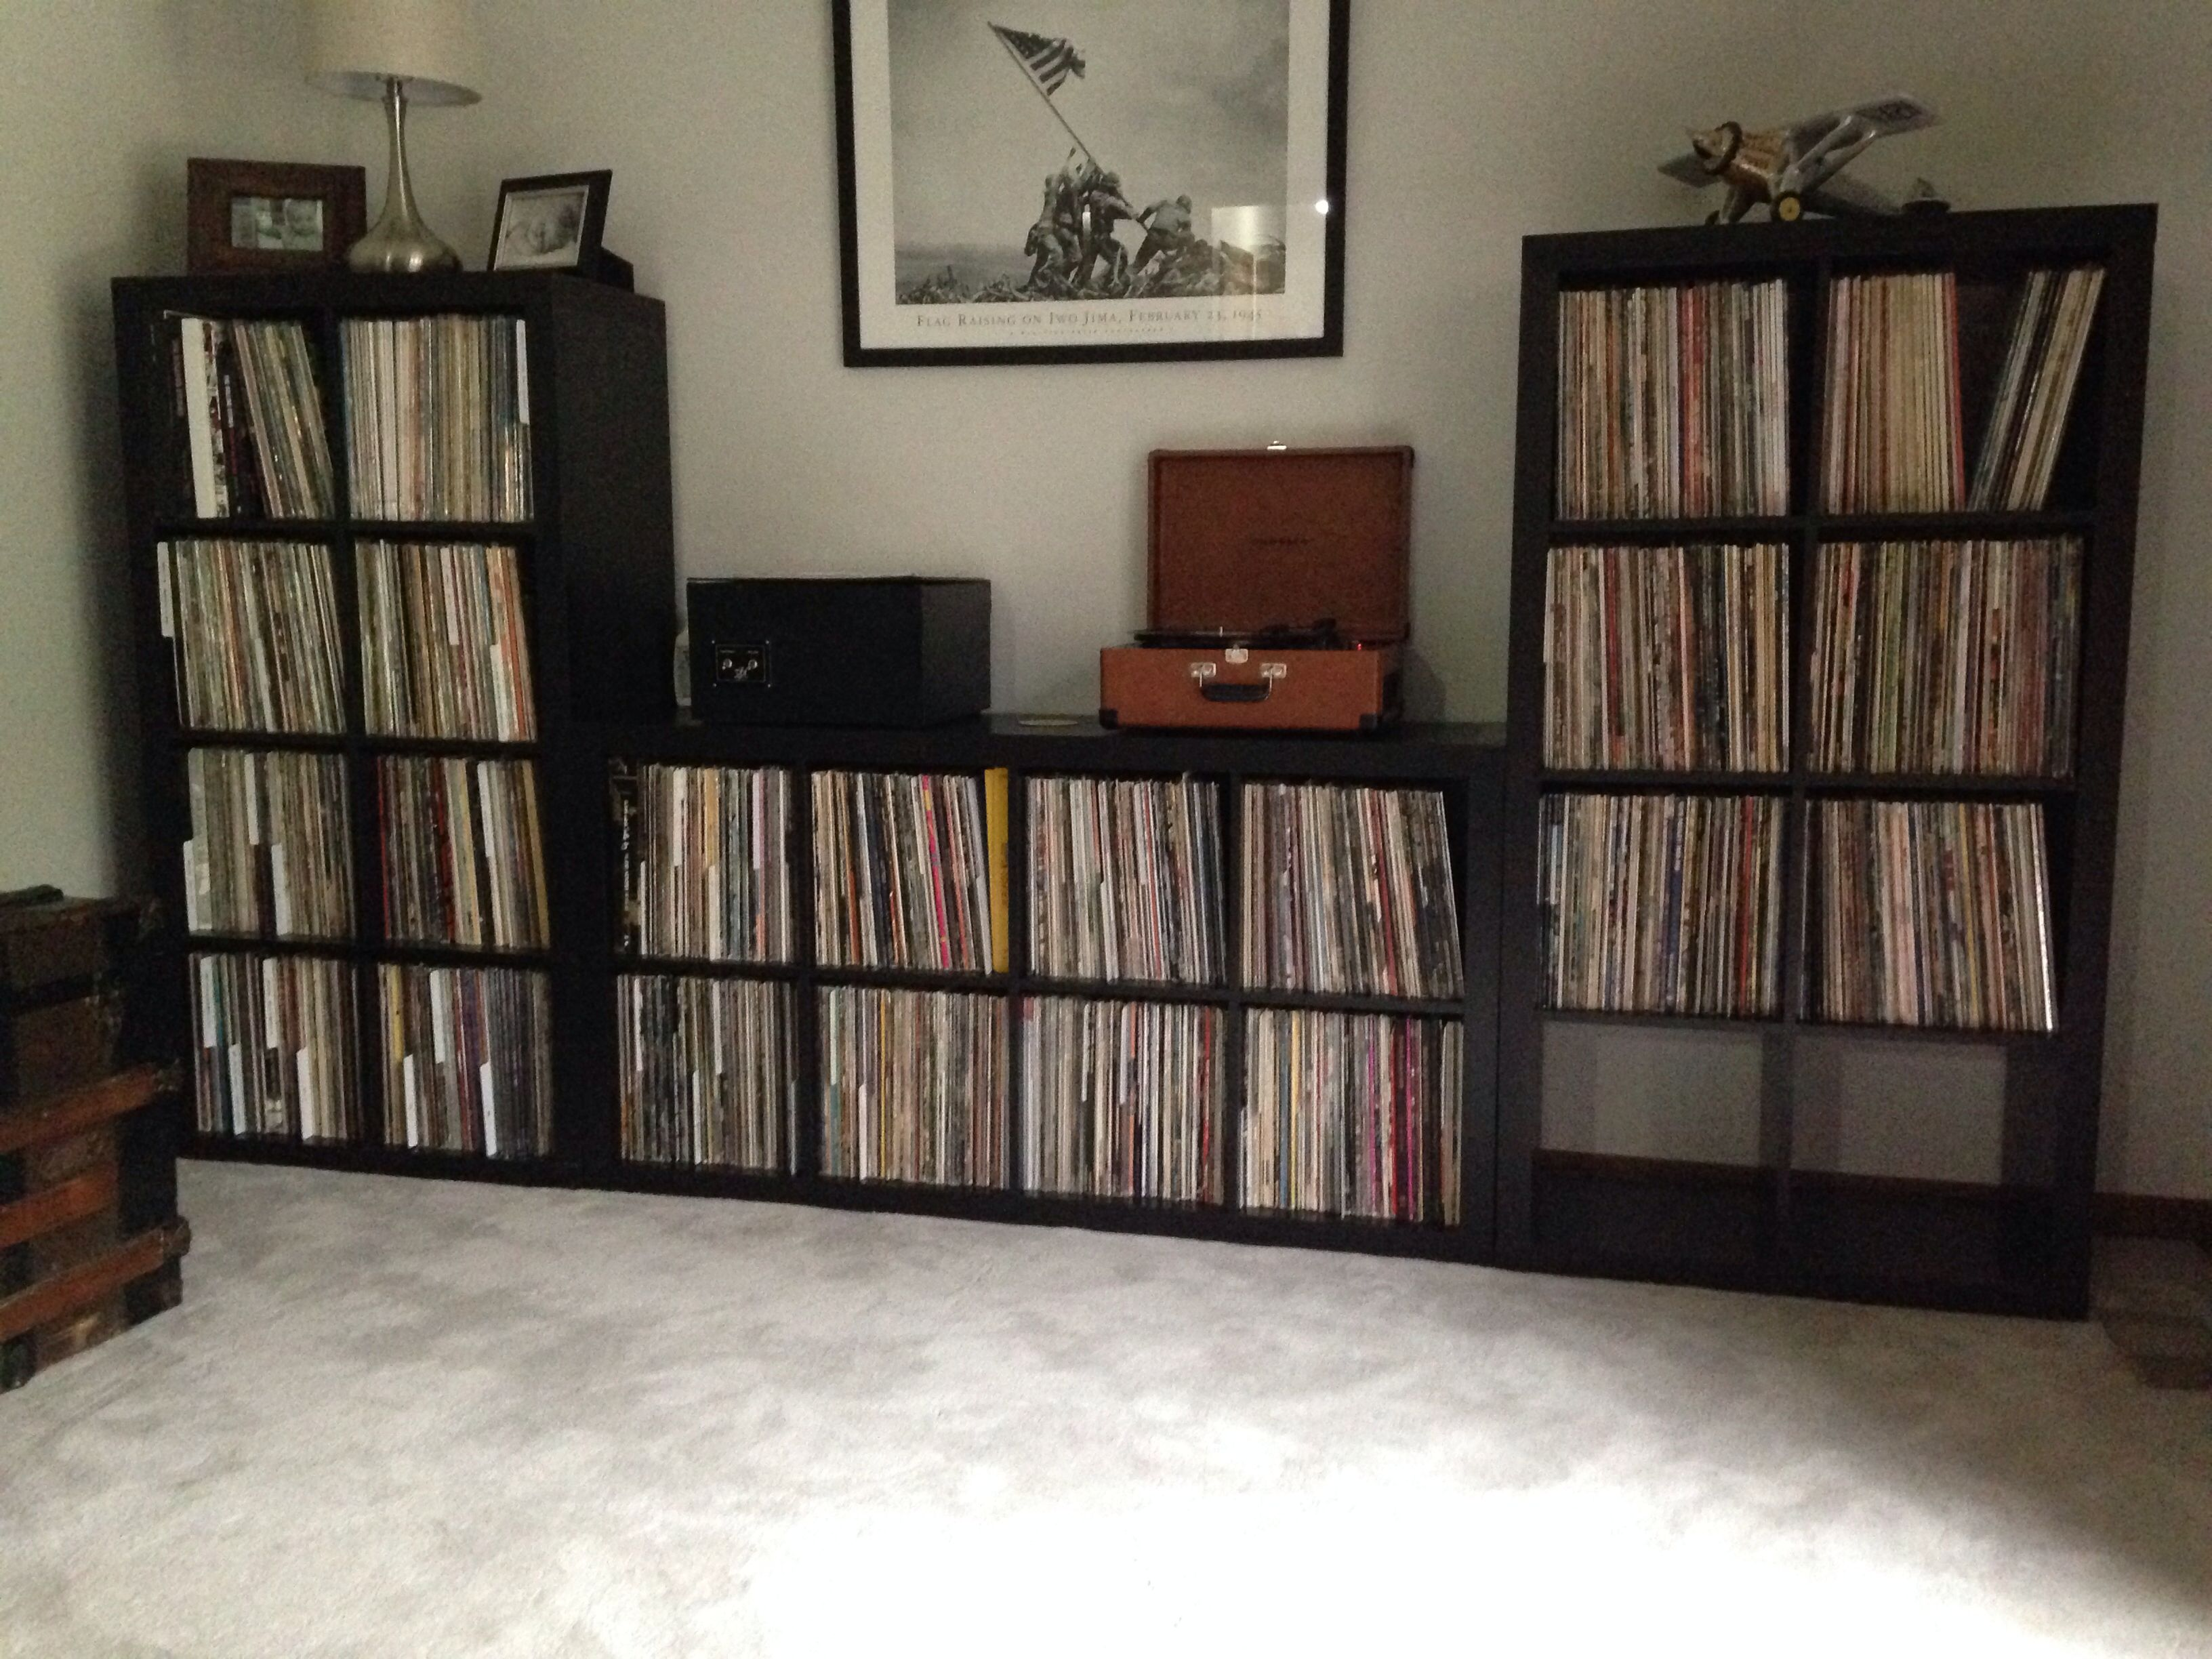 Ikea Bookshelves Are Perfect For Record Storage Vinyl Record Room Record Room Record Storage